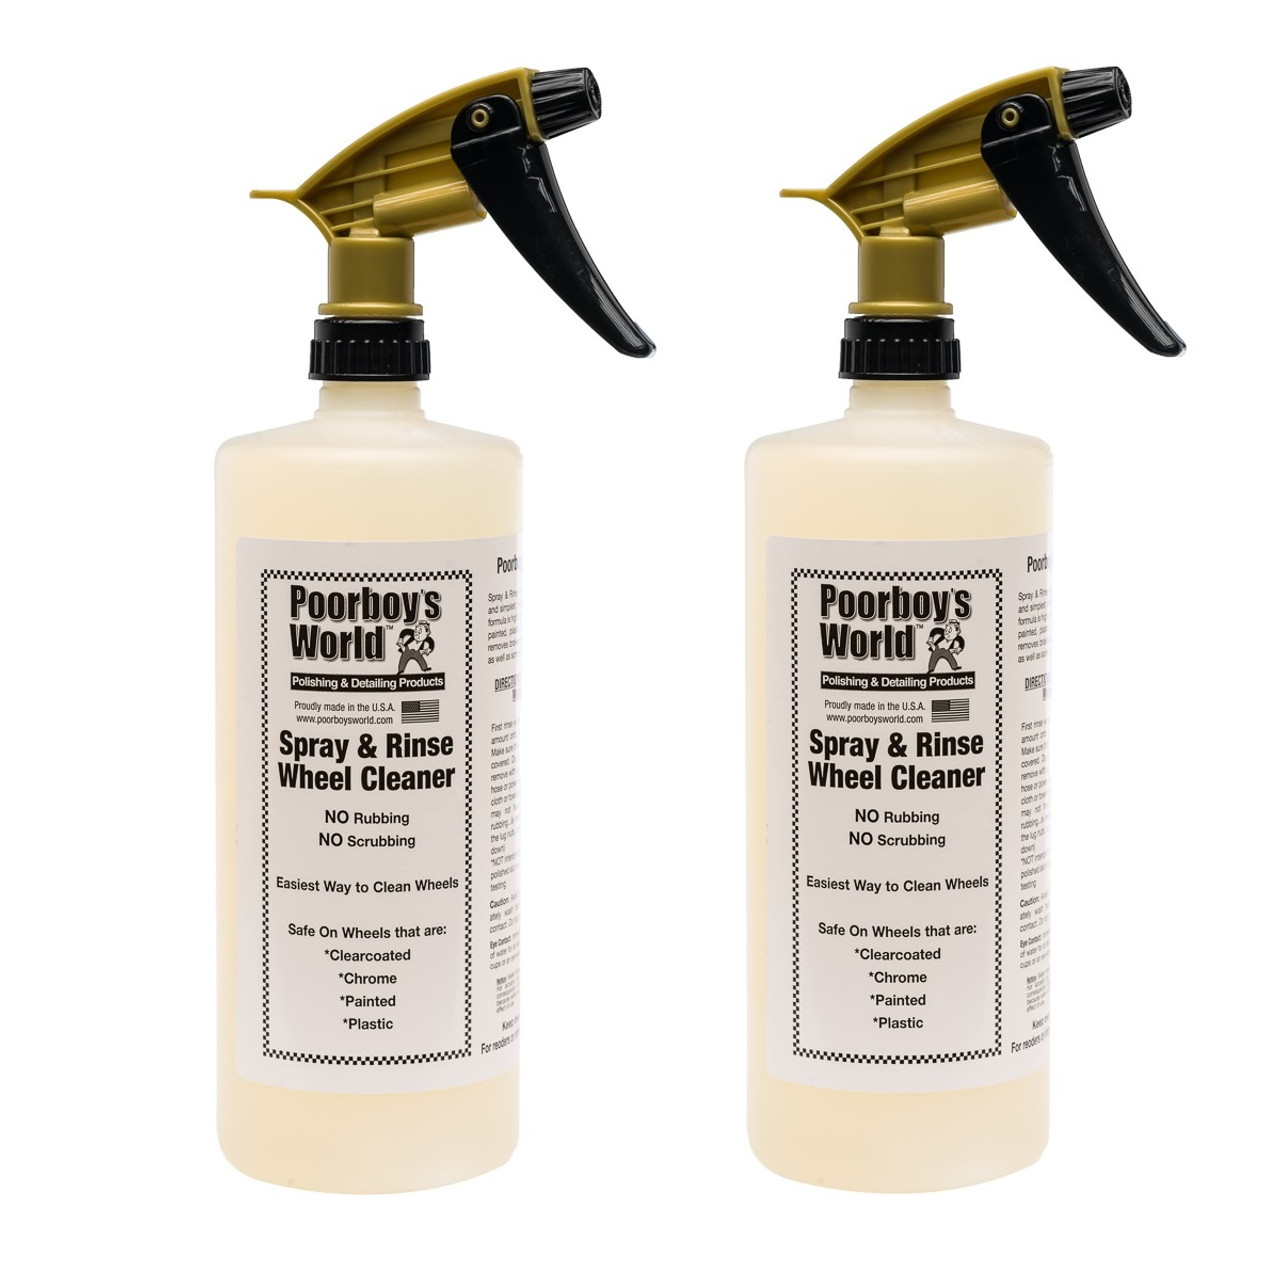 Spray & Rinse Wheel Cleaner 32oz - Lot of 2